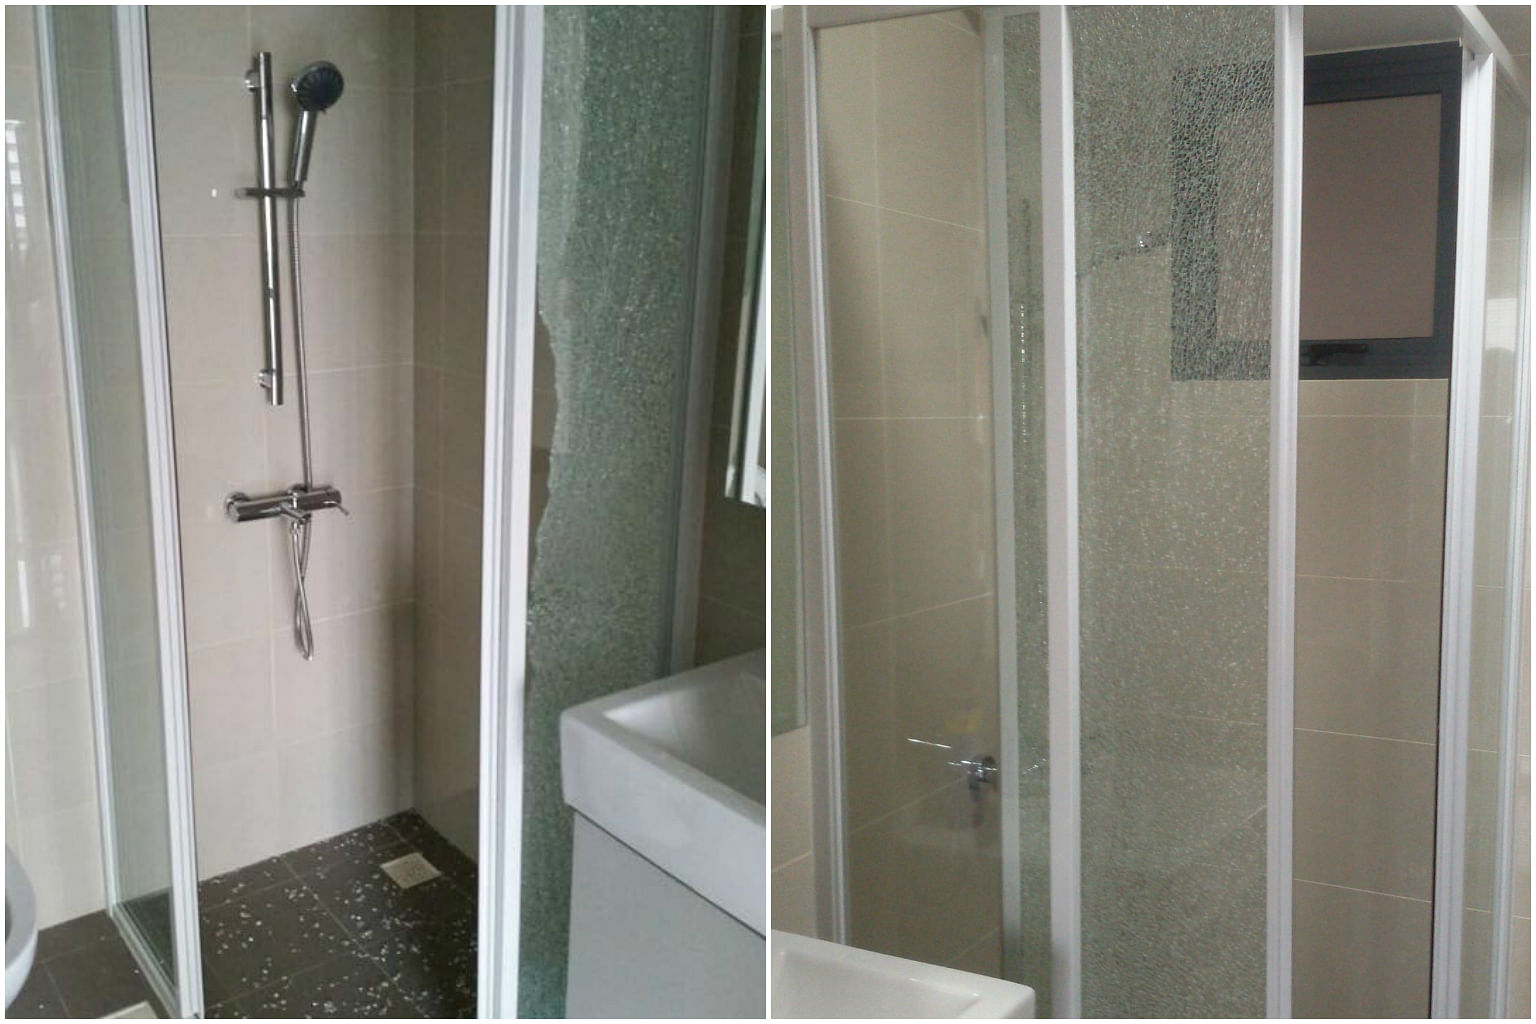 Shower Doors Portrayal Toilet Paper Holders White Acrylic Seats